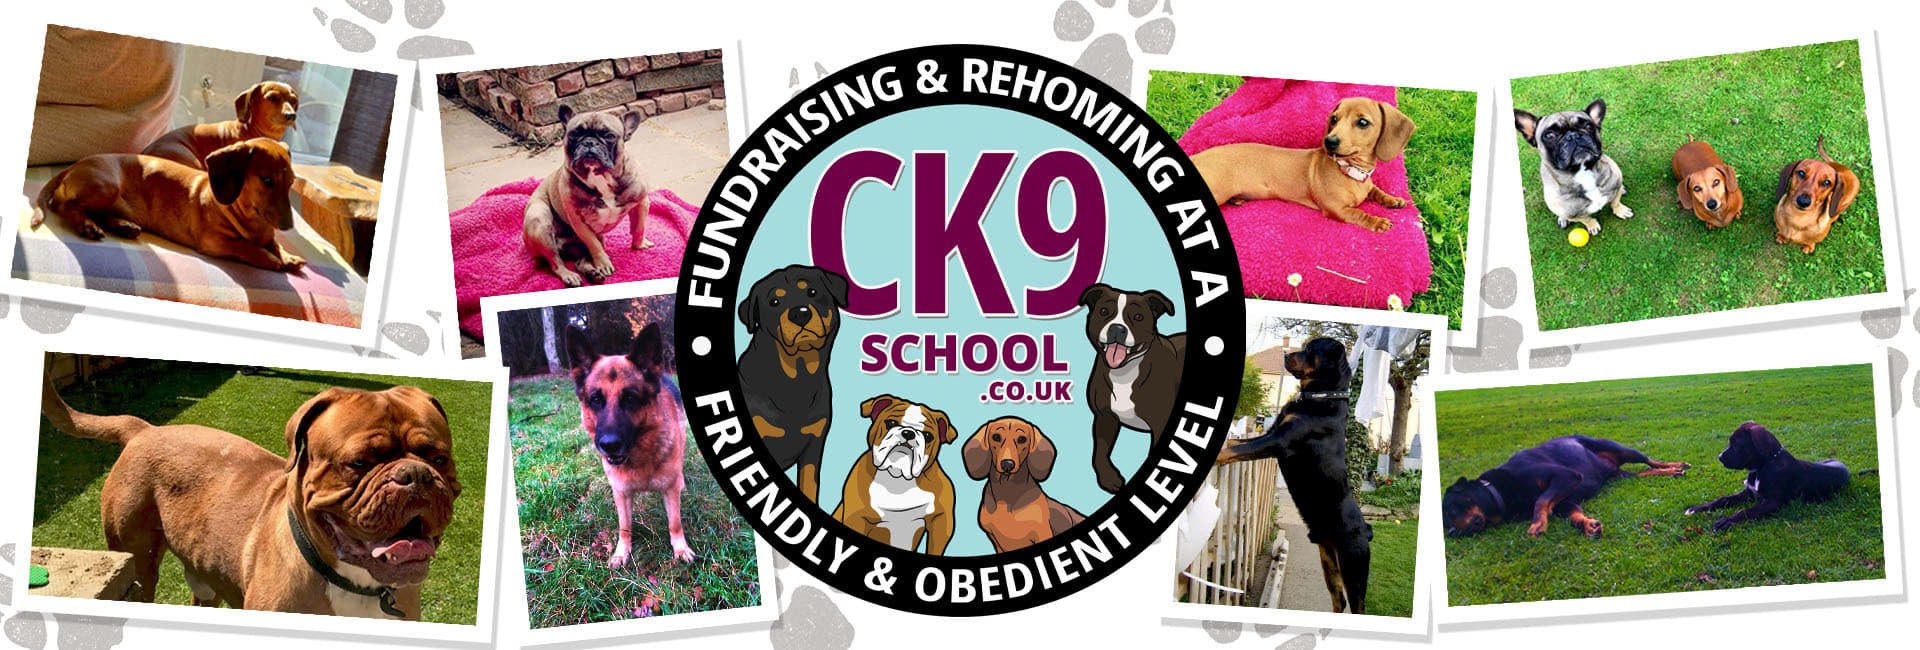 Ck9 Rehoming Centre